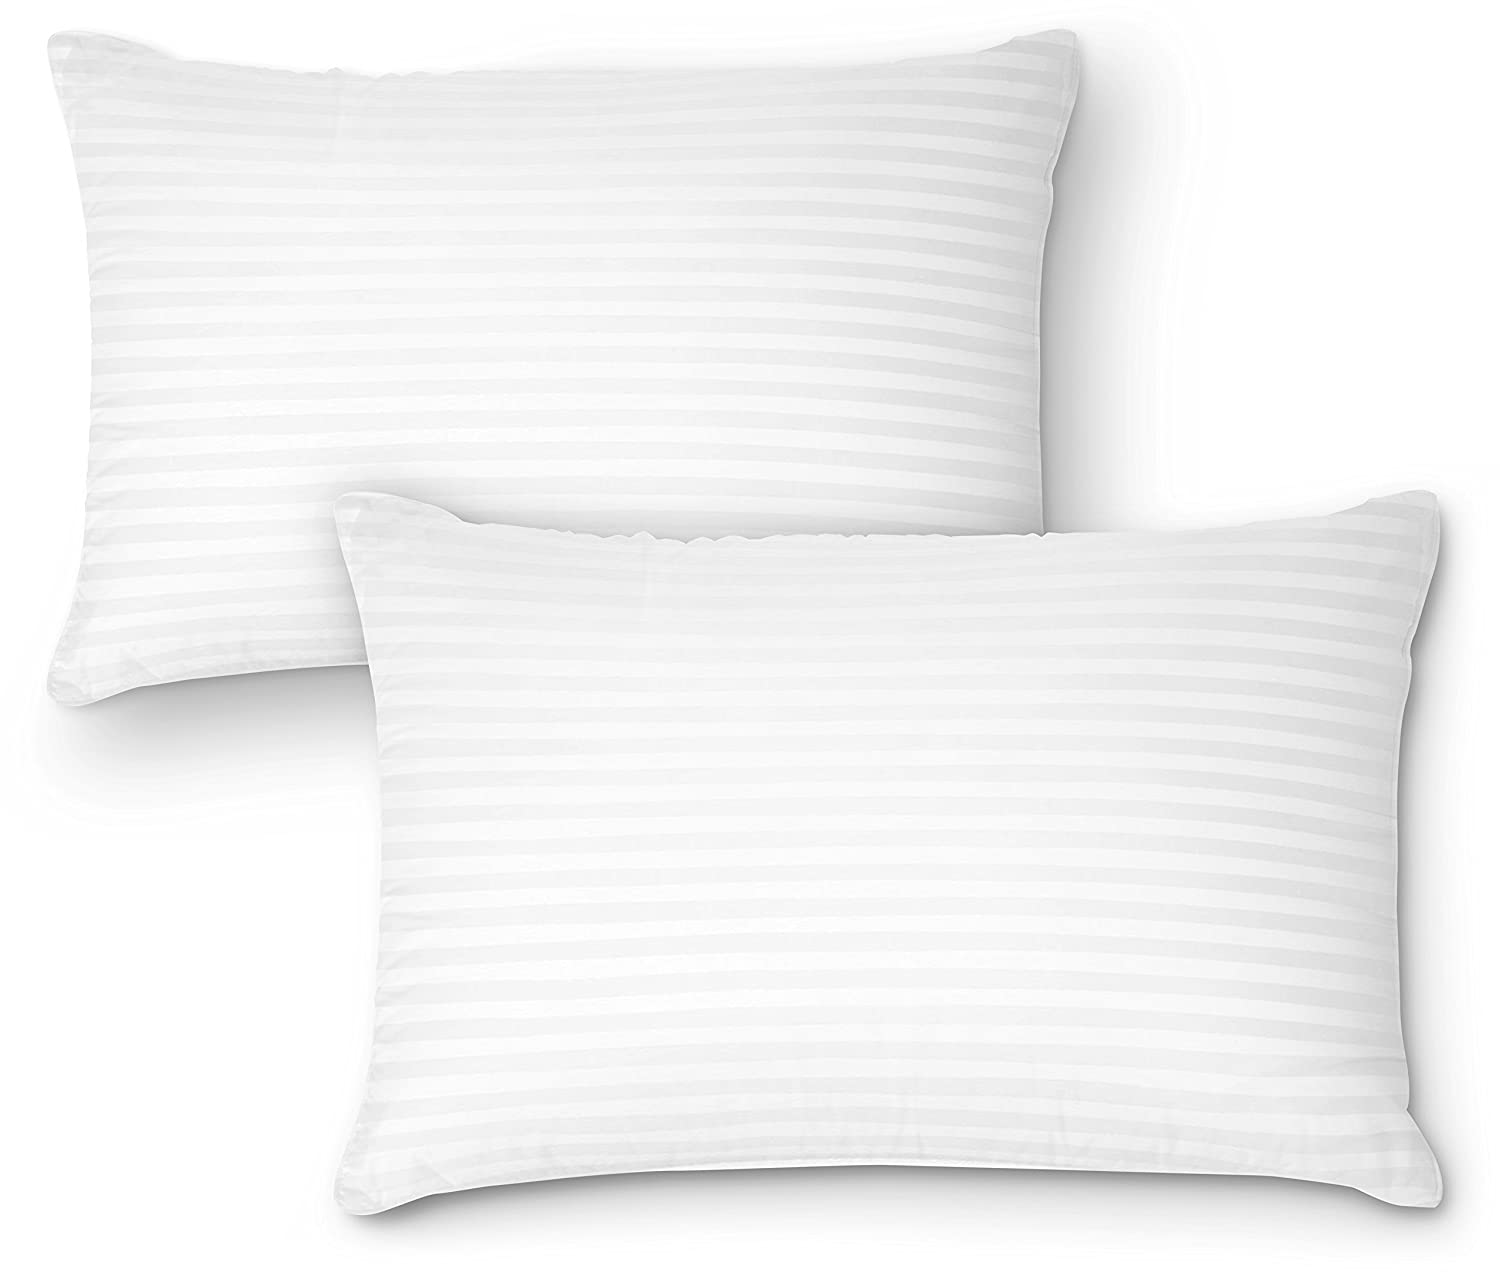 DreamNorth PREMIUM Gel Pillow Image